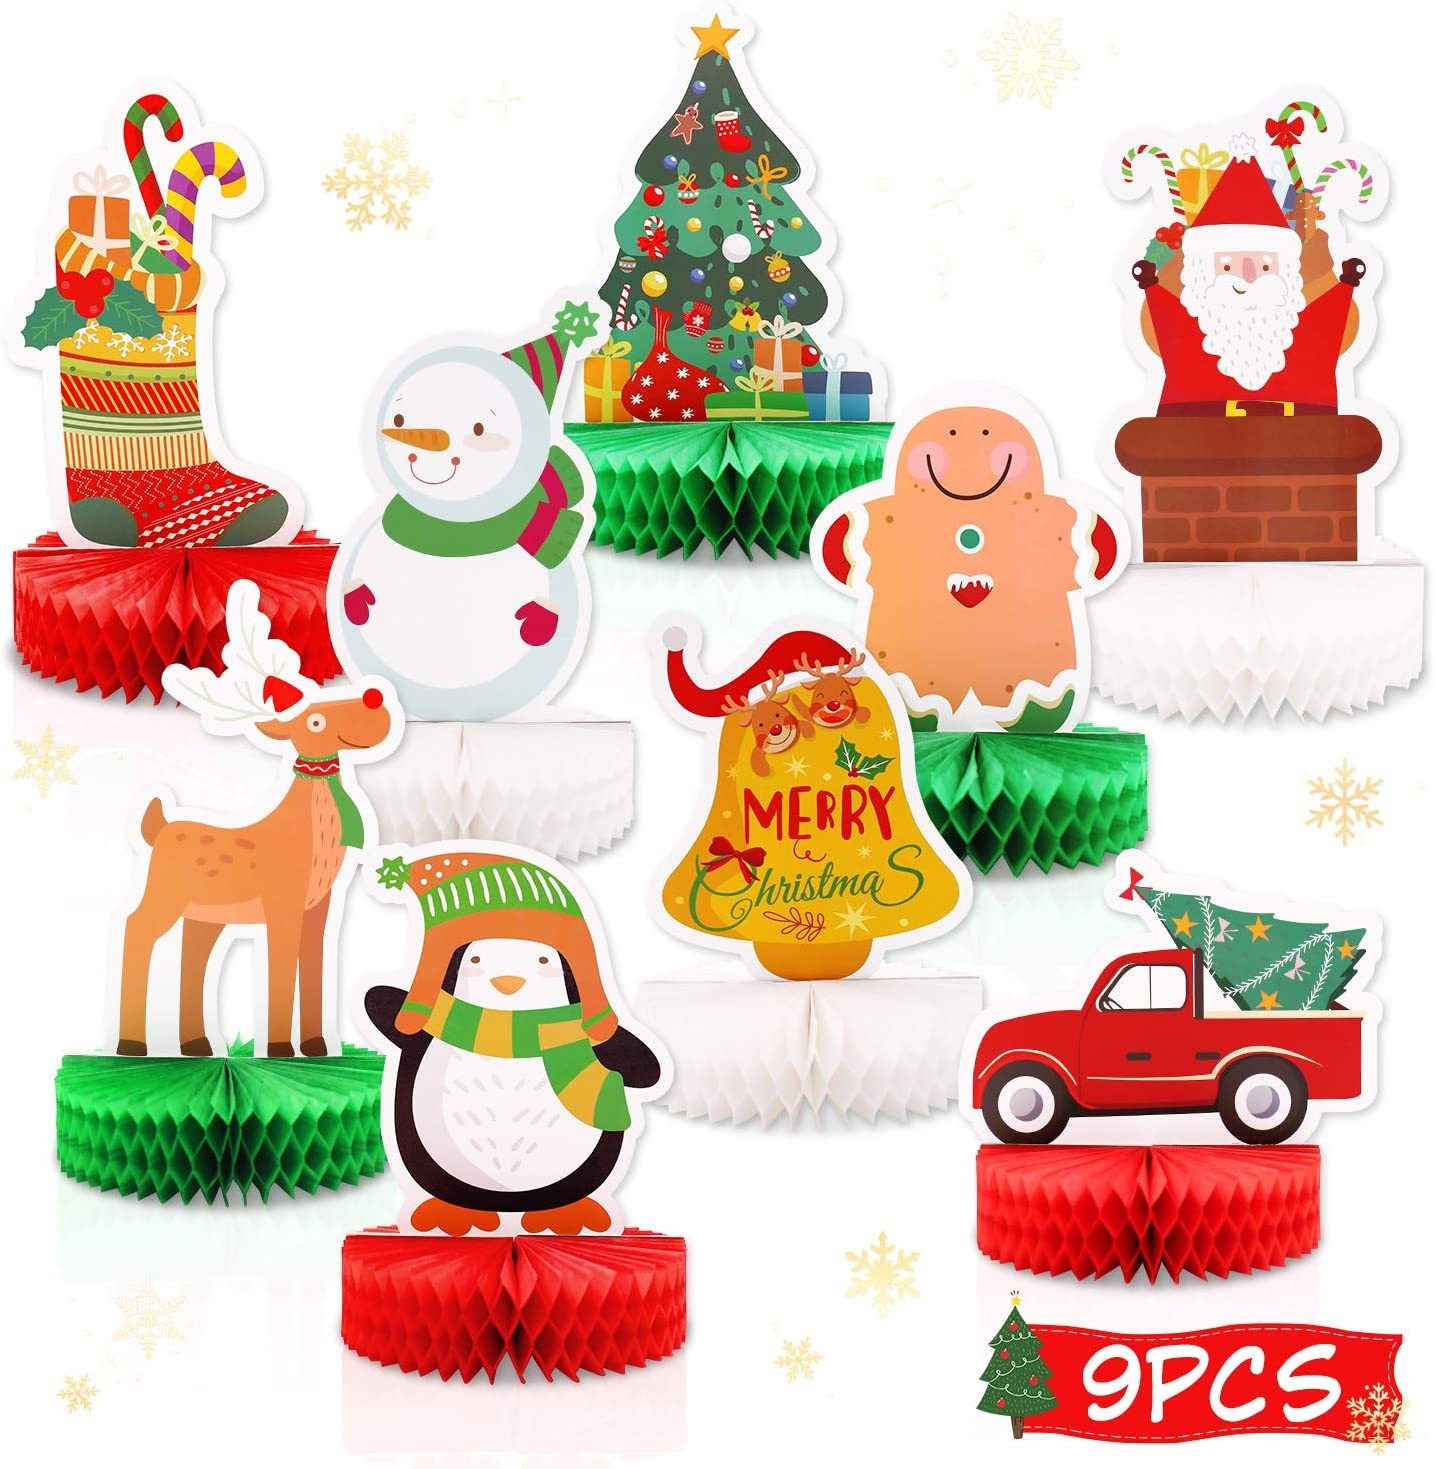 Amazon Com Christmas Honeycomb Centerpieces For Christmas Party 3d Table Decorations Snowman Santa Reindeer Christmas Tree Red Car Gingerbread Stockings Bell Penguin Merry Christmas Winter Holidays Supplies Toys Games